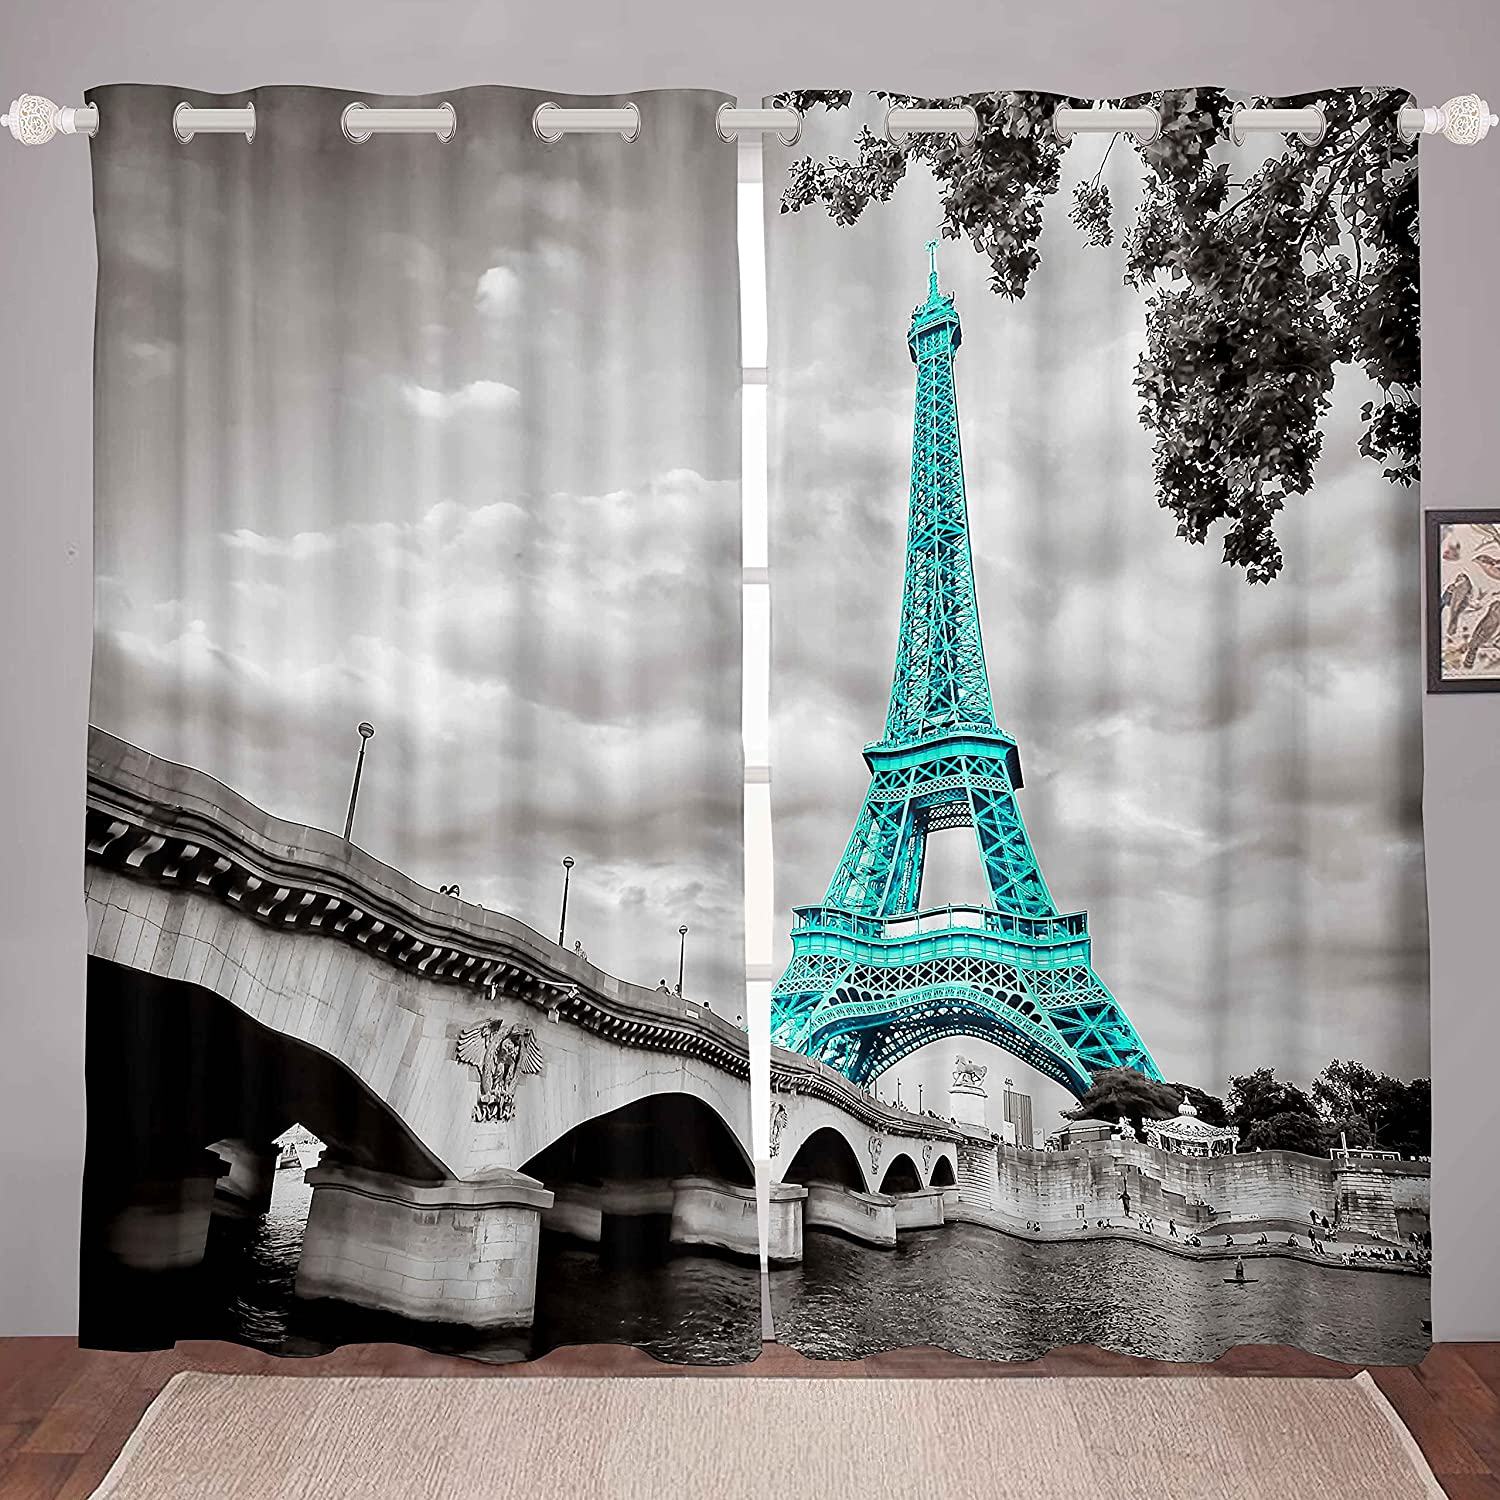 Paris Decor Curtains for Girls Bedroom Chic Eiffel Tower Curtain Gray Teal French Paris Theme Wall Window Drapes Girl Women Retro Romantic Window Treatment Living Room Home (2 Panels, 38 x 45 Inch)